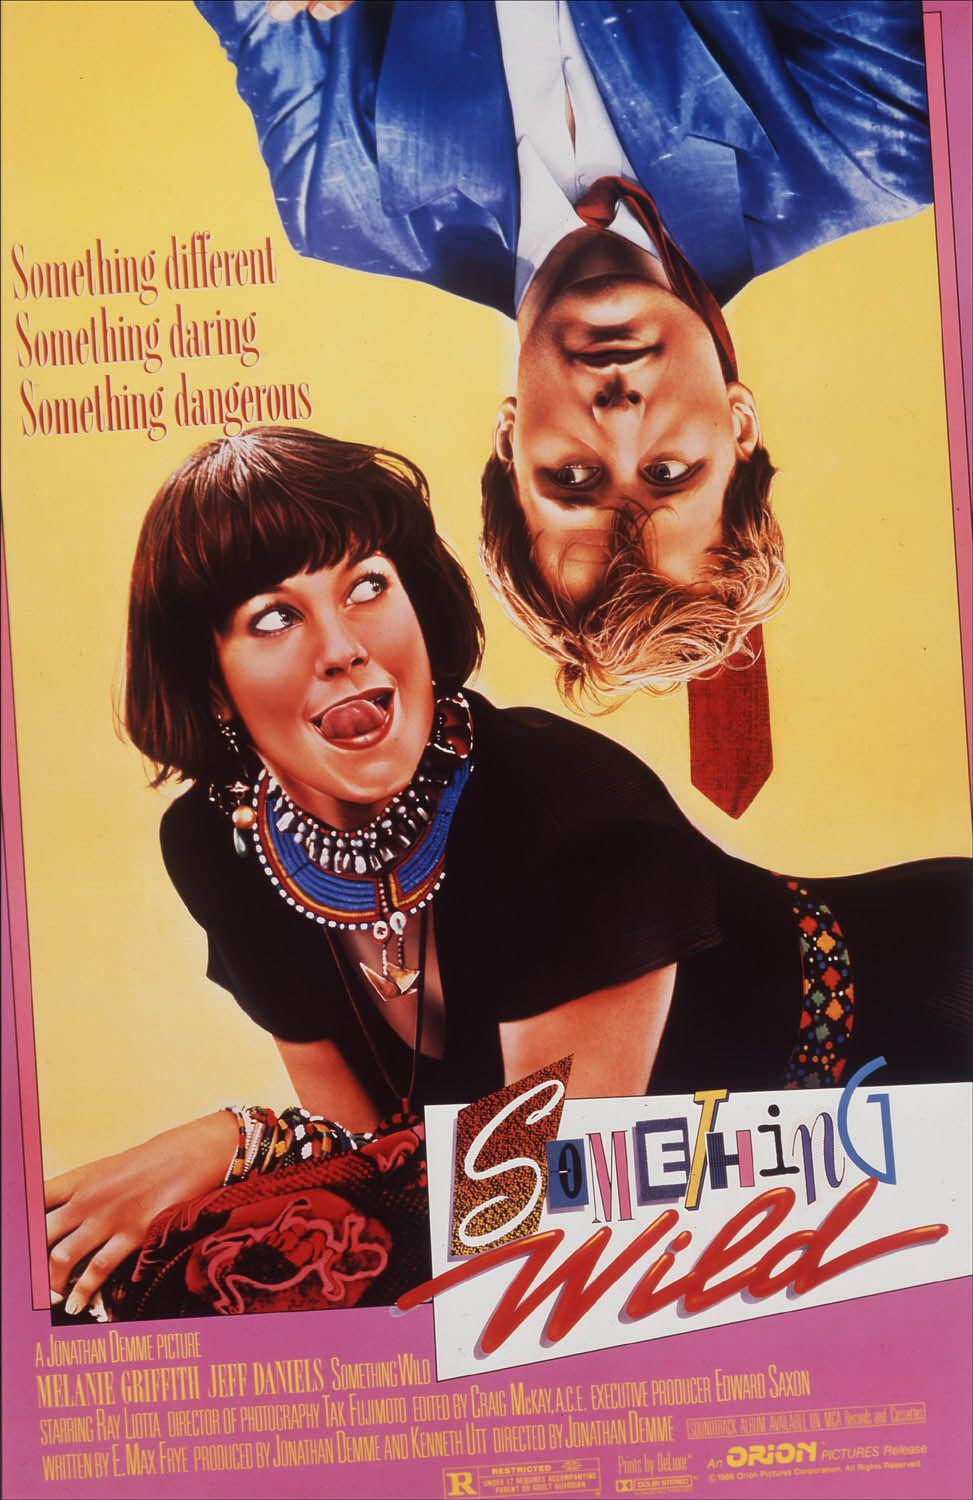 Something wild ... something different, something daring, something dangerous - A Jonathan Demme picture with Melanie Griffith - Jeff Daniels - Orion film poster